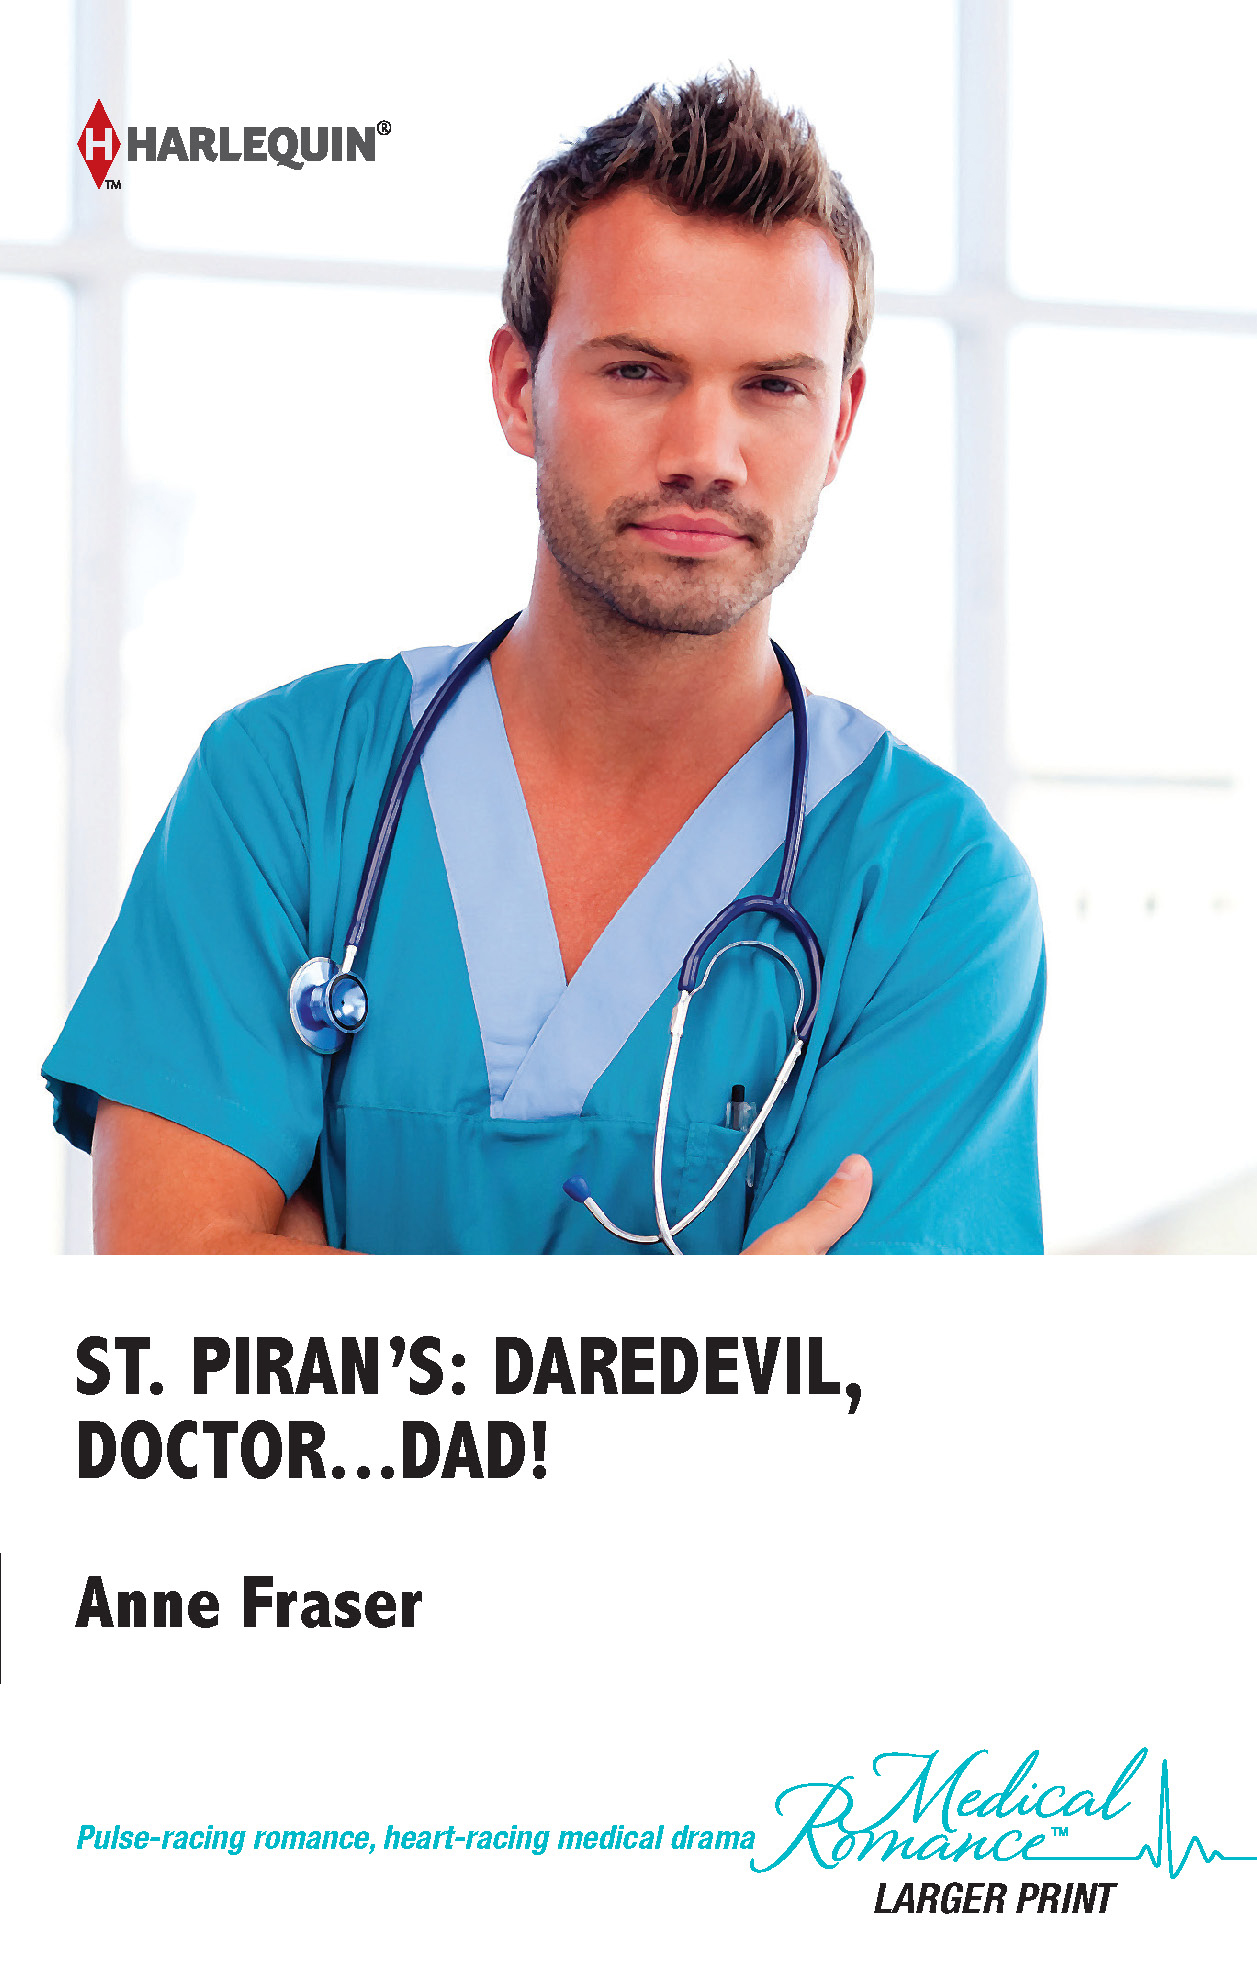 St. Piran's: Daredevil, Doctor...Dad!